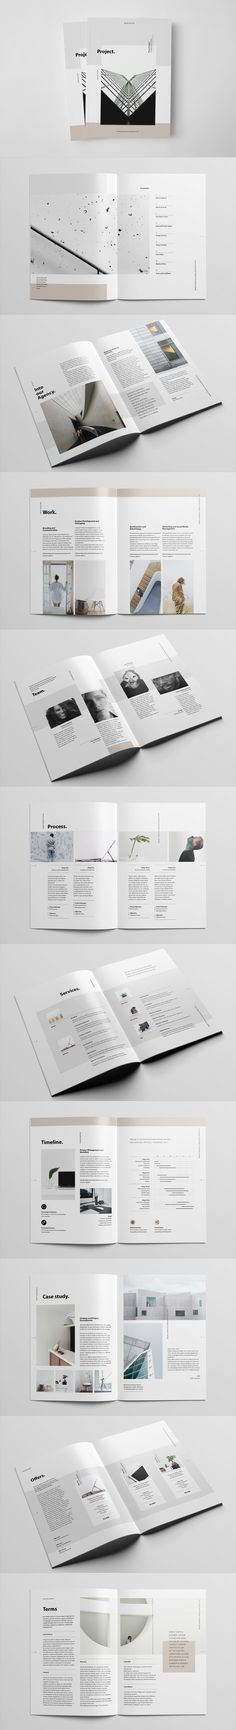 Project Proposal Brochure 22 Unique Layouts Template InDesign INDD